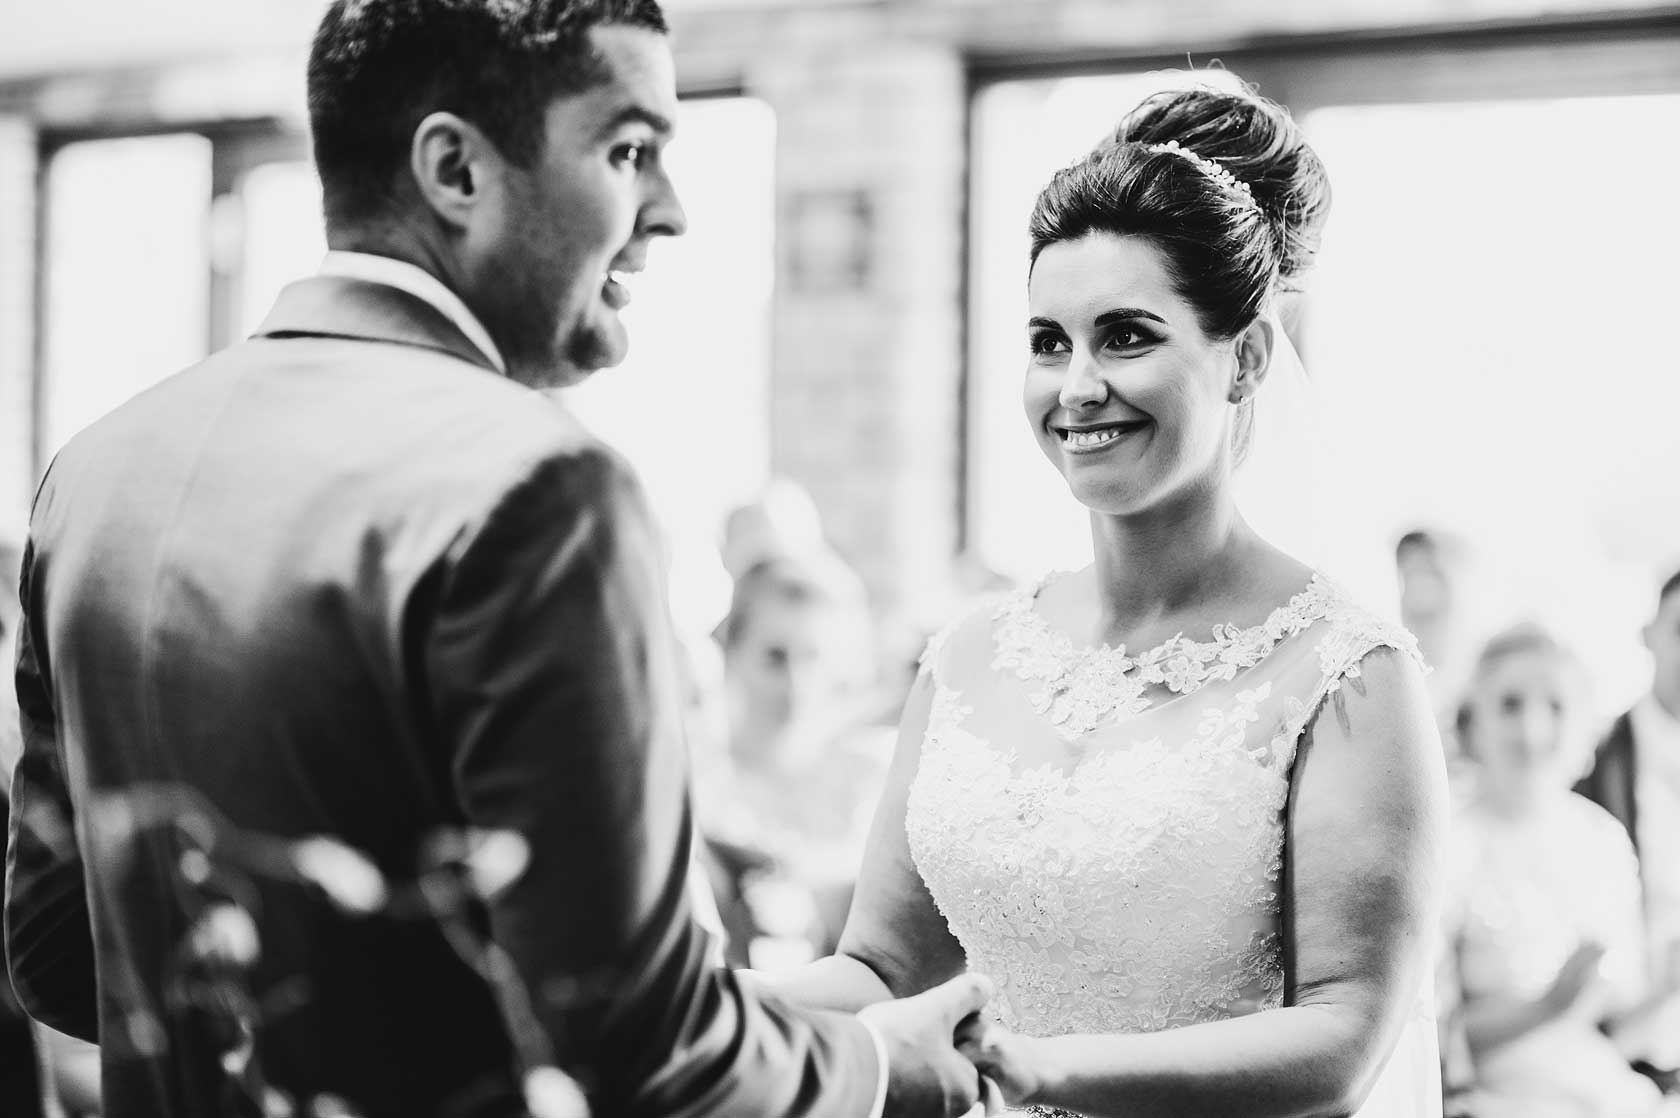 Keythorpe Manor Wedding in Leicestershire